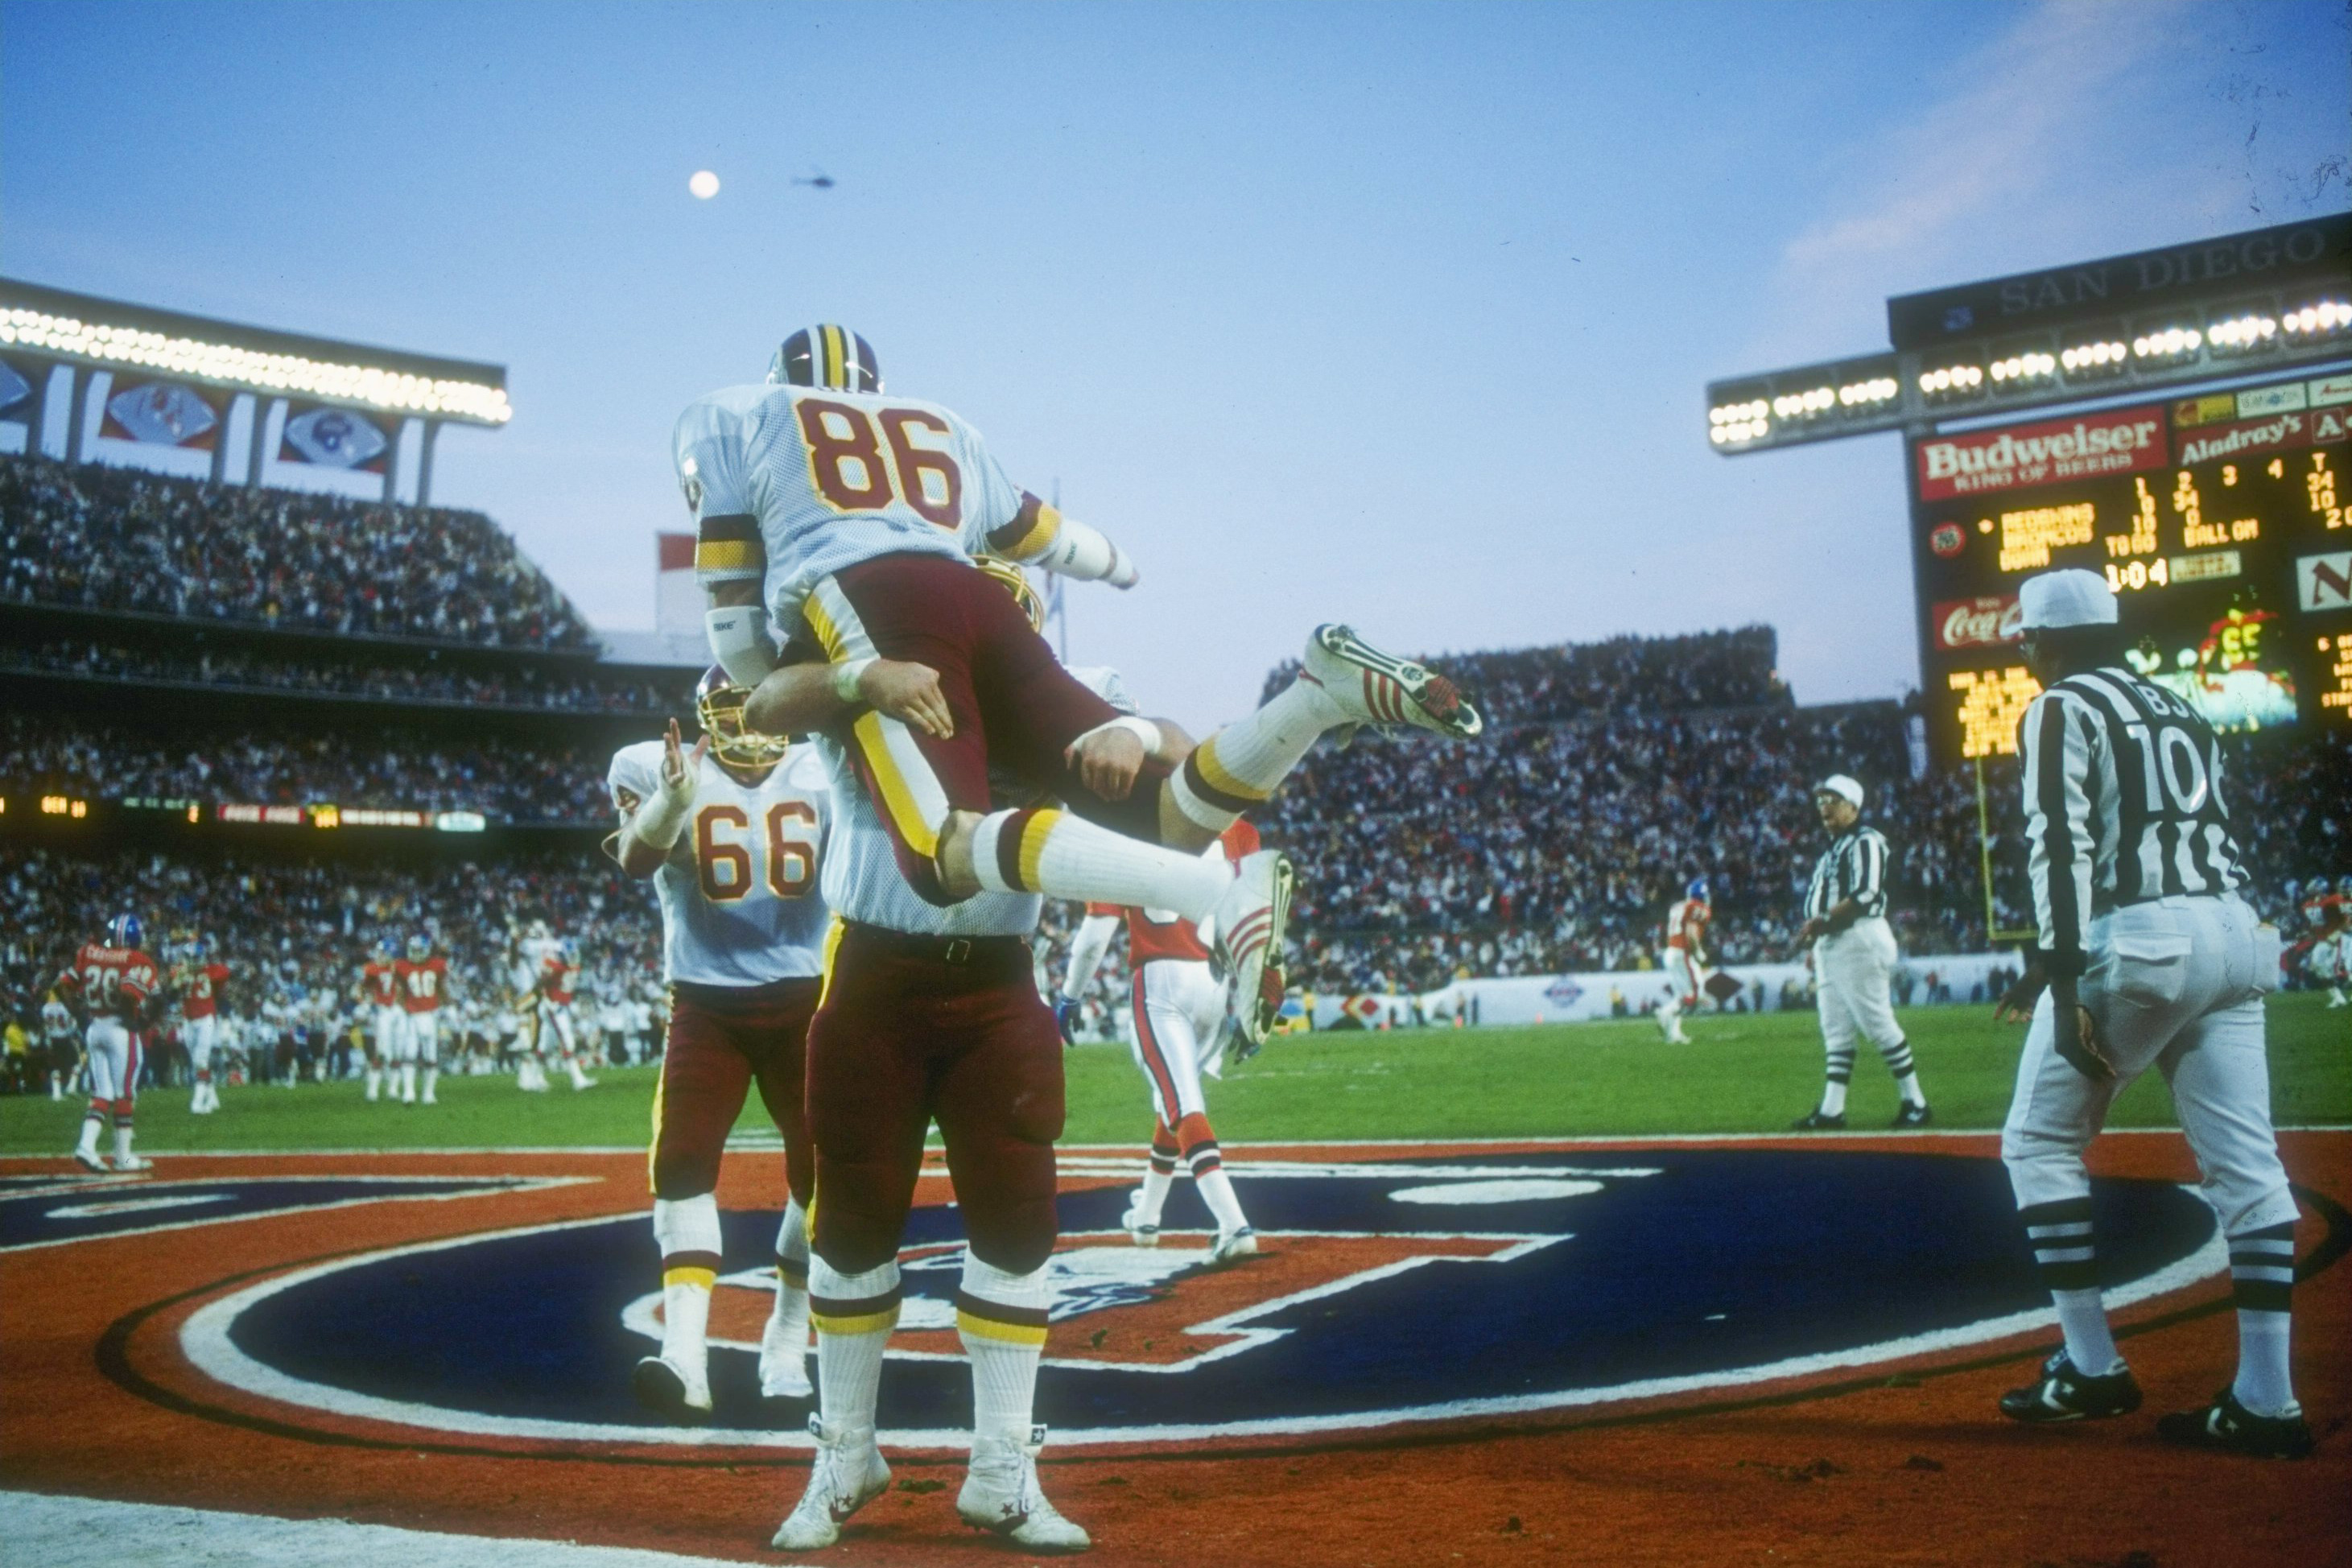 776502beb Tight end Clint Didier celebrates an eight-yard reception during second  quarter of Super Bowl XXII against the Denver Broncos at Jack Murphy  Stadium in San ...